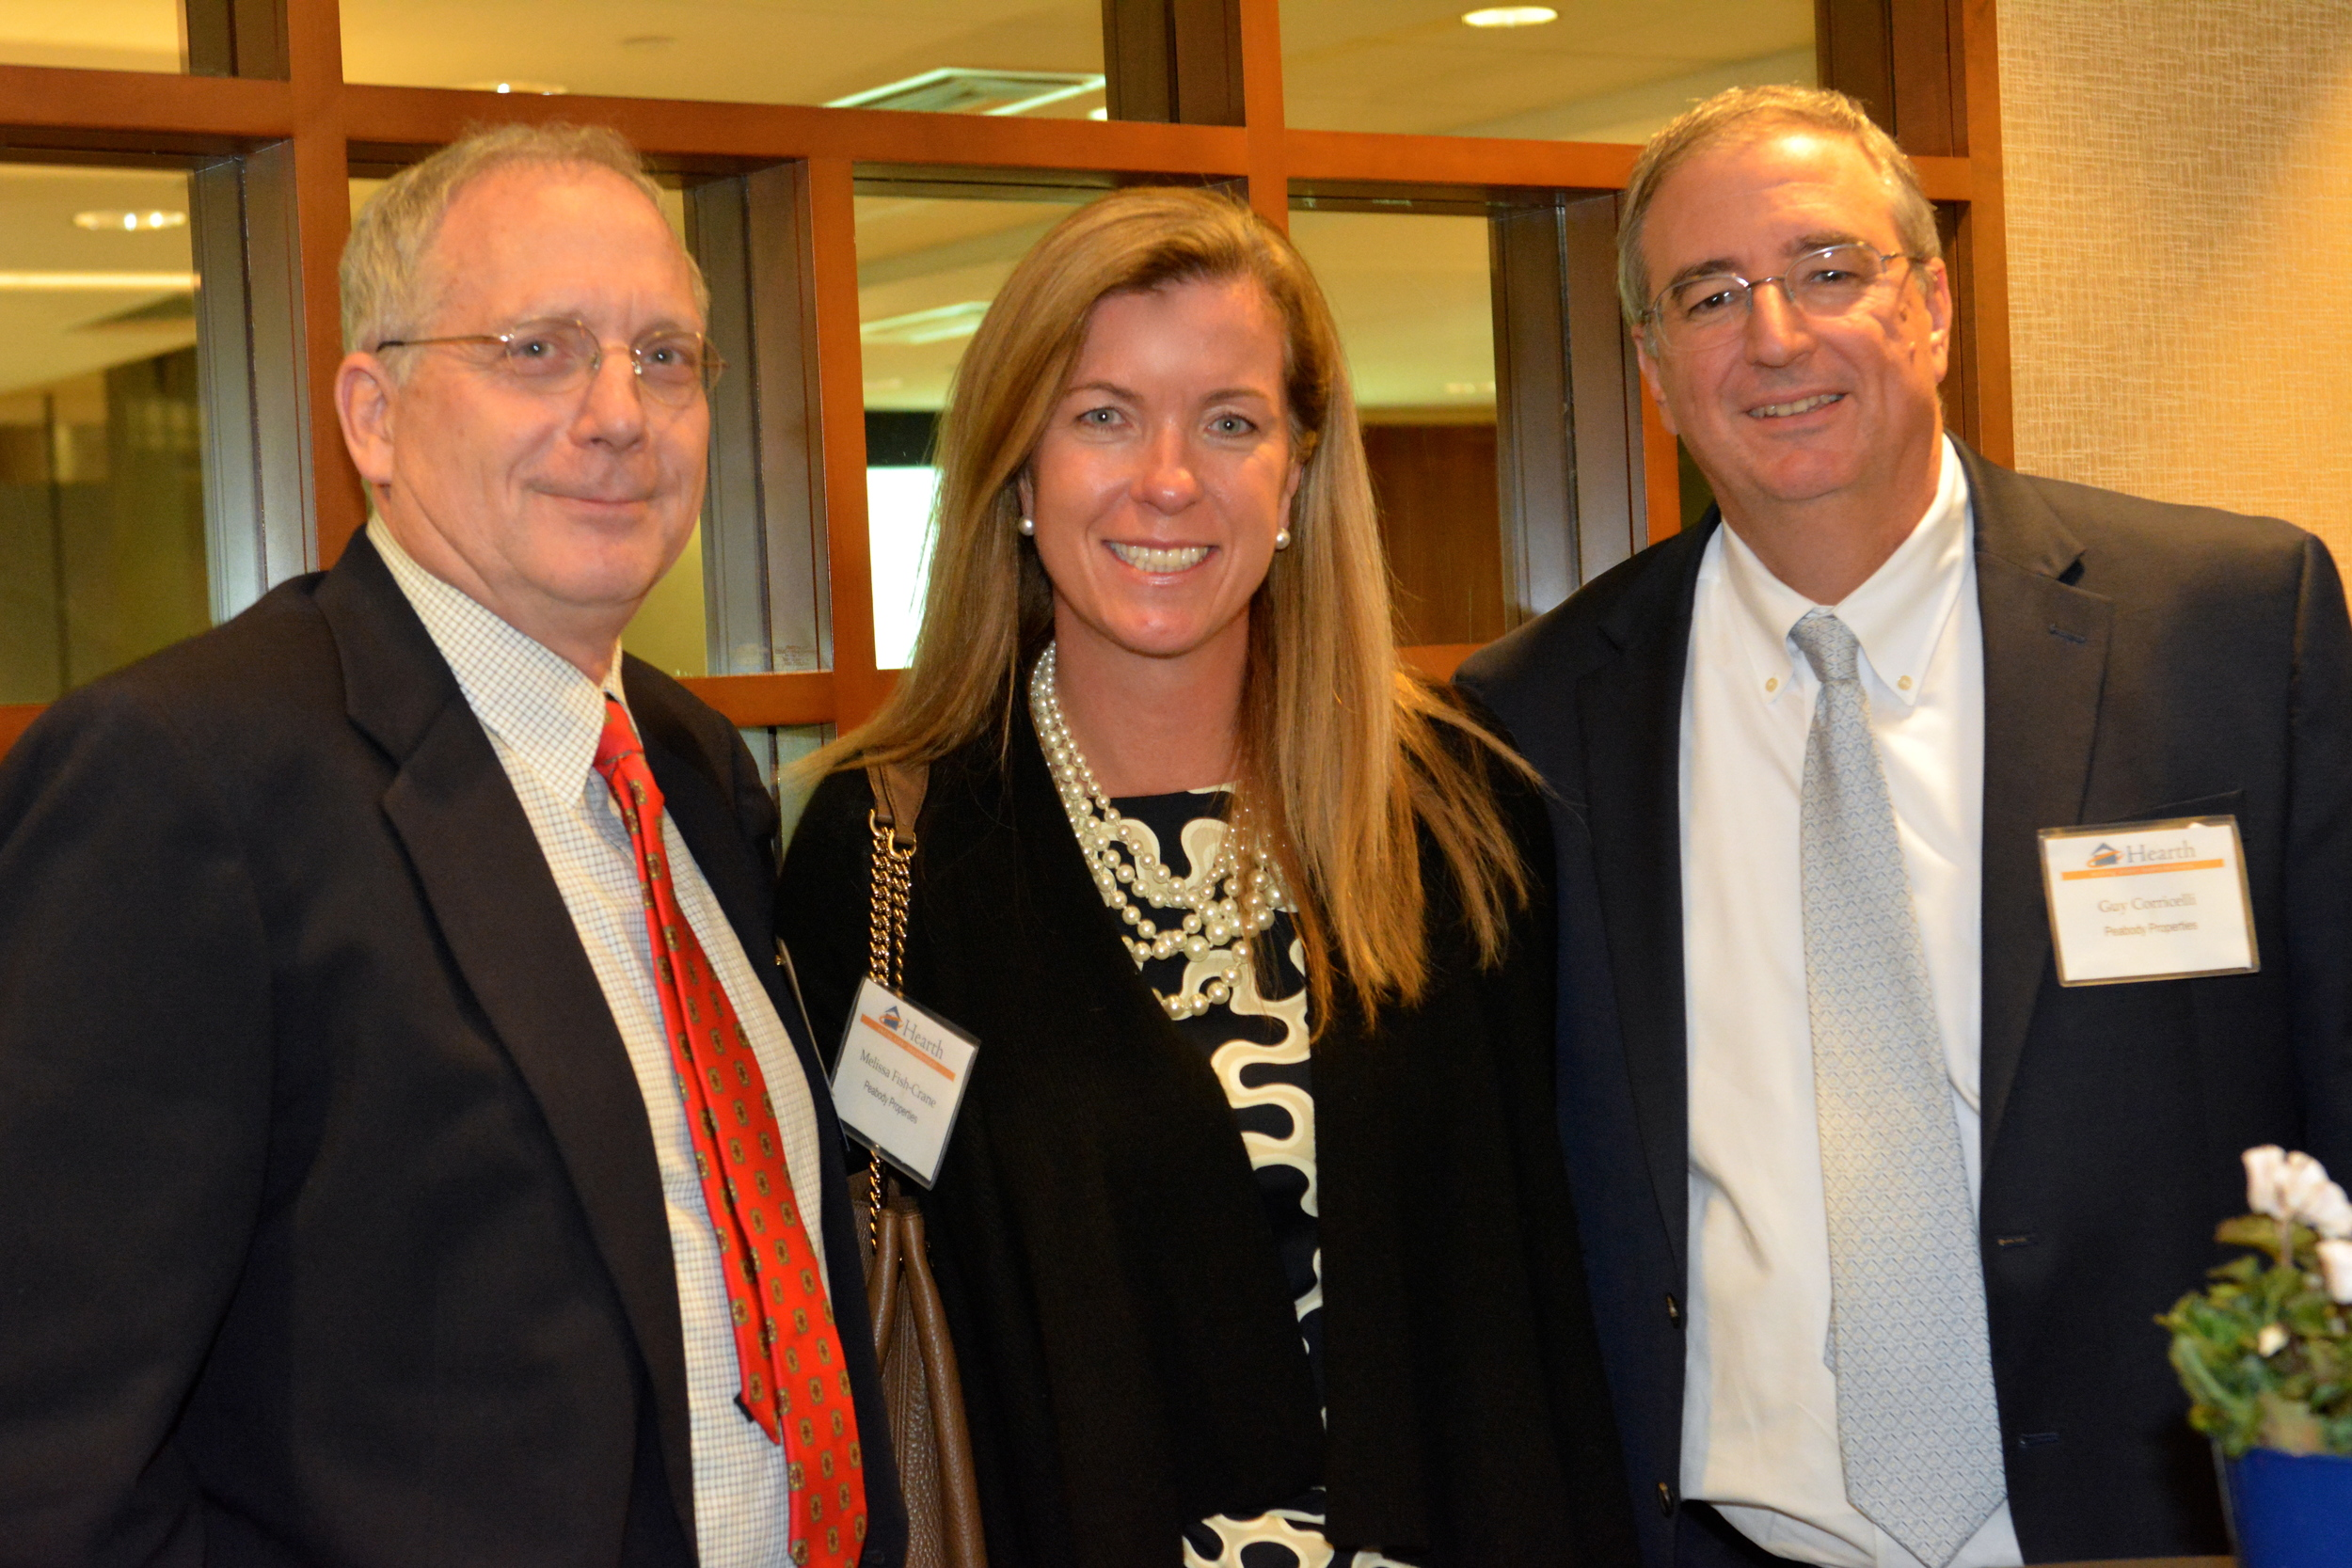 Hearth Board Member Bob Bickford (left) with Melissa Fish-Crane and Guy Corricelli of Peabody Properties.